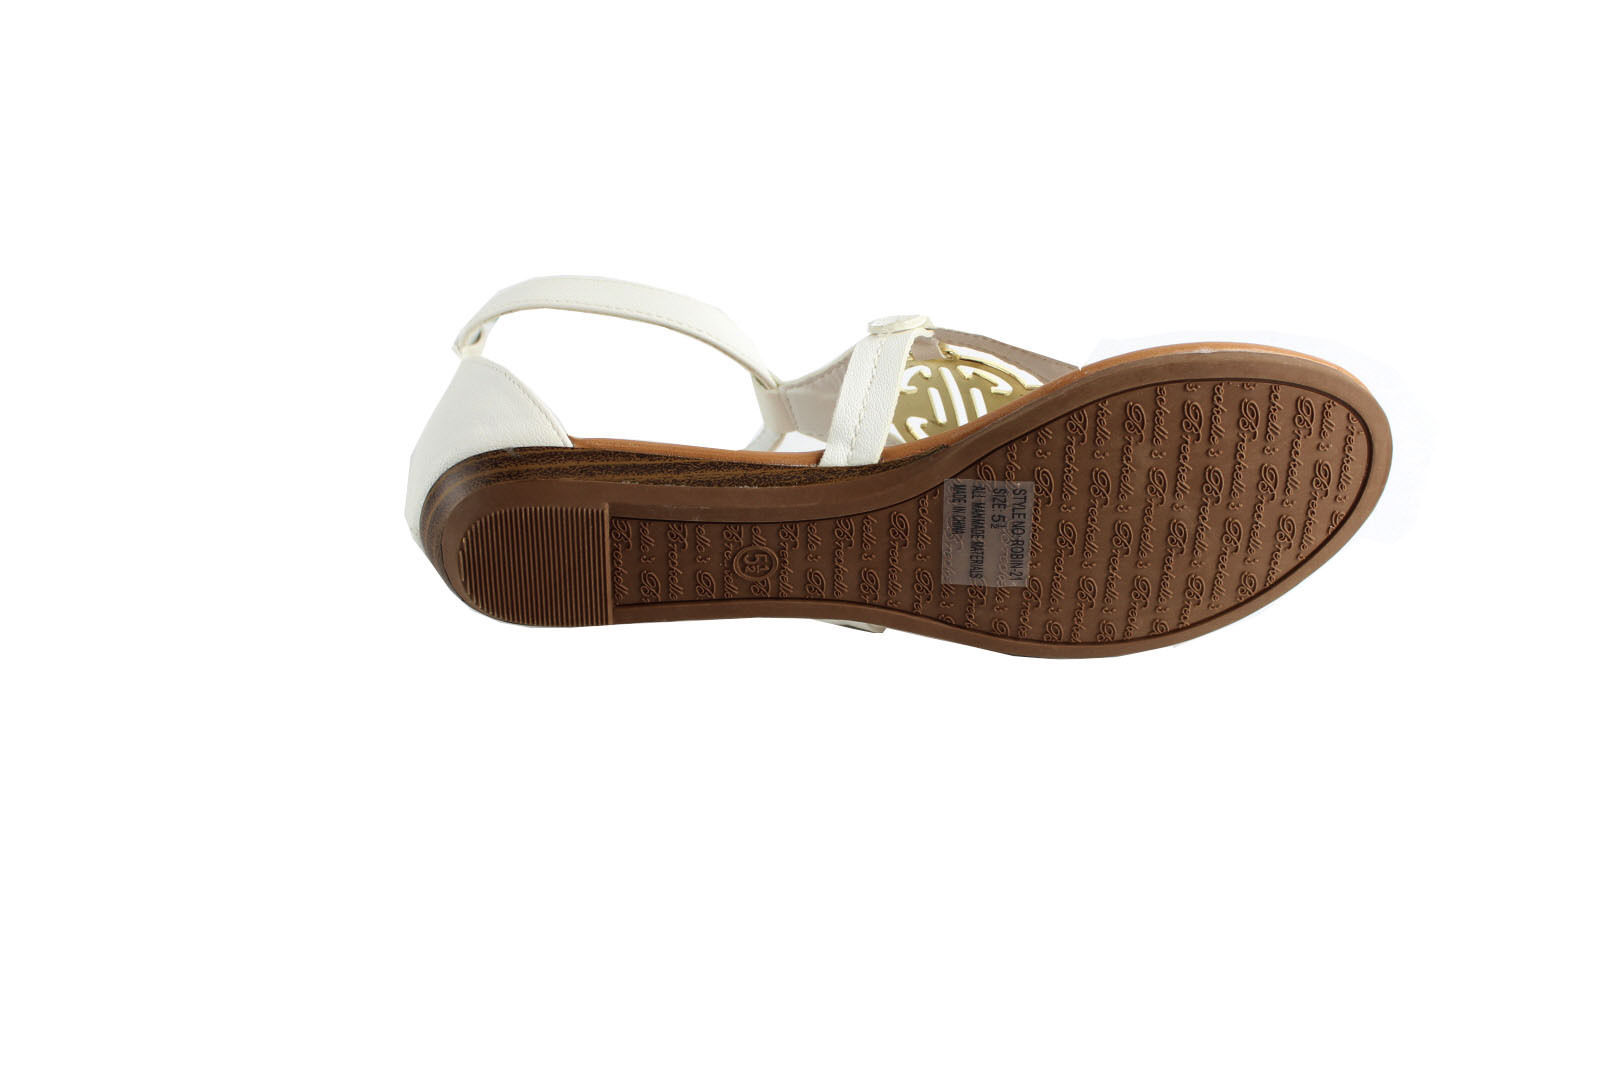 Breckelle's Ankle Strappy Open Toe Casual  Summer Cute Thong Flat Sandal Shoes